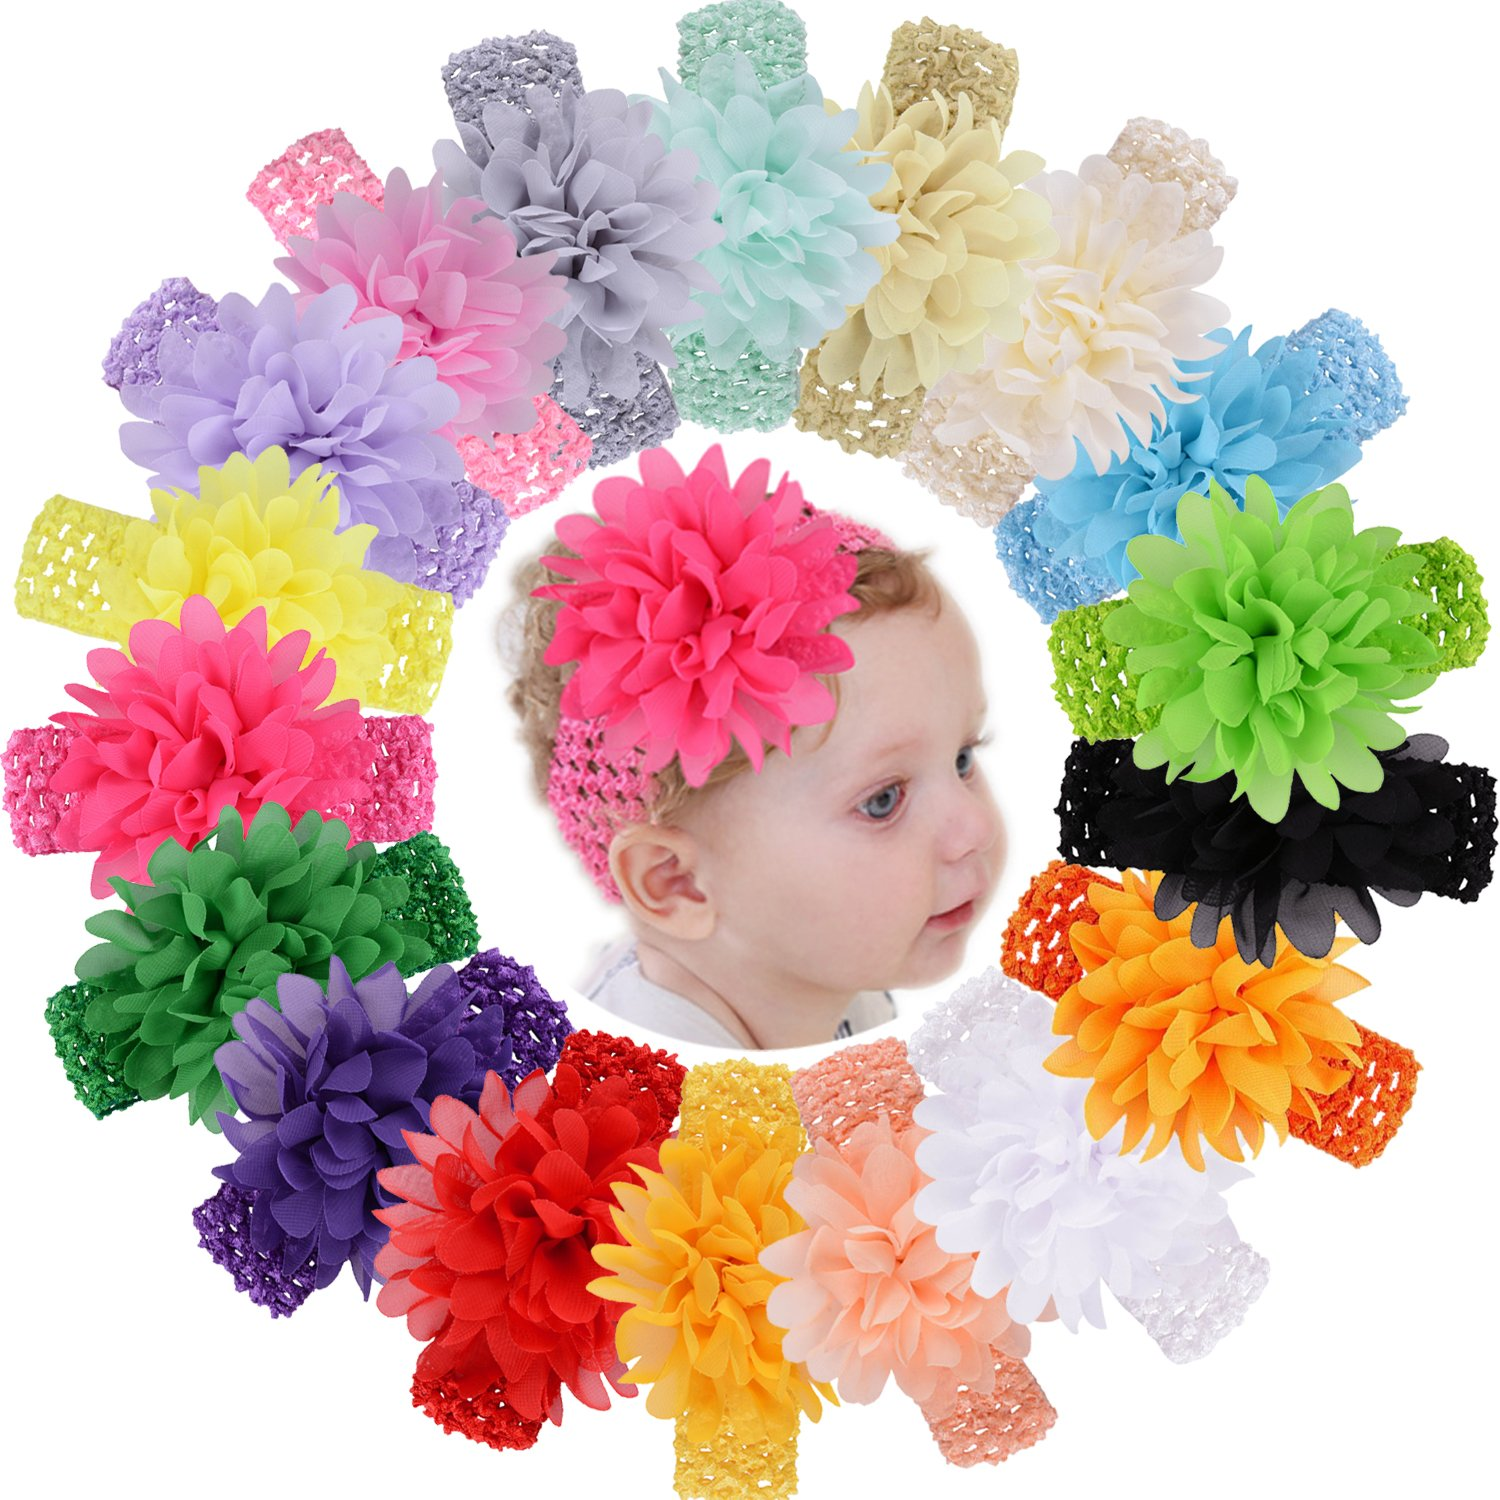 18pcs Baby Girls Headbands Chiffon Flower Soft Strecth Hair Band Hair  Accessories for Baby Girls Newborns 9ecc6cee45b4